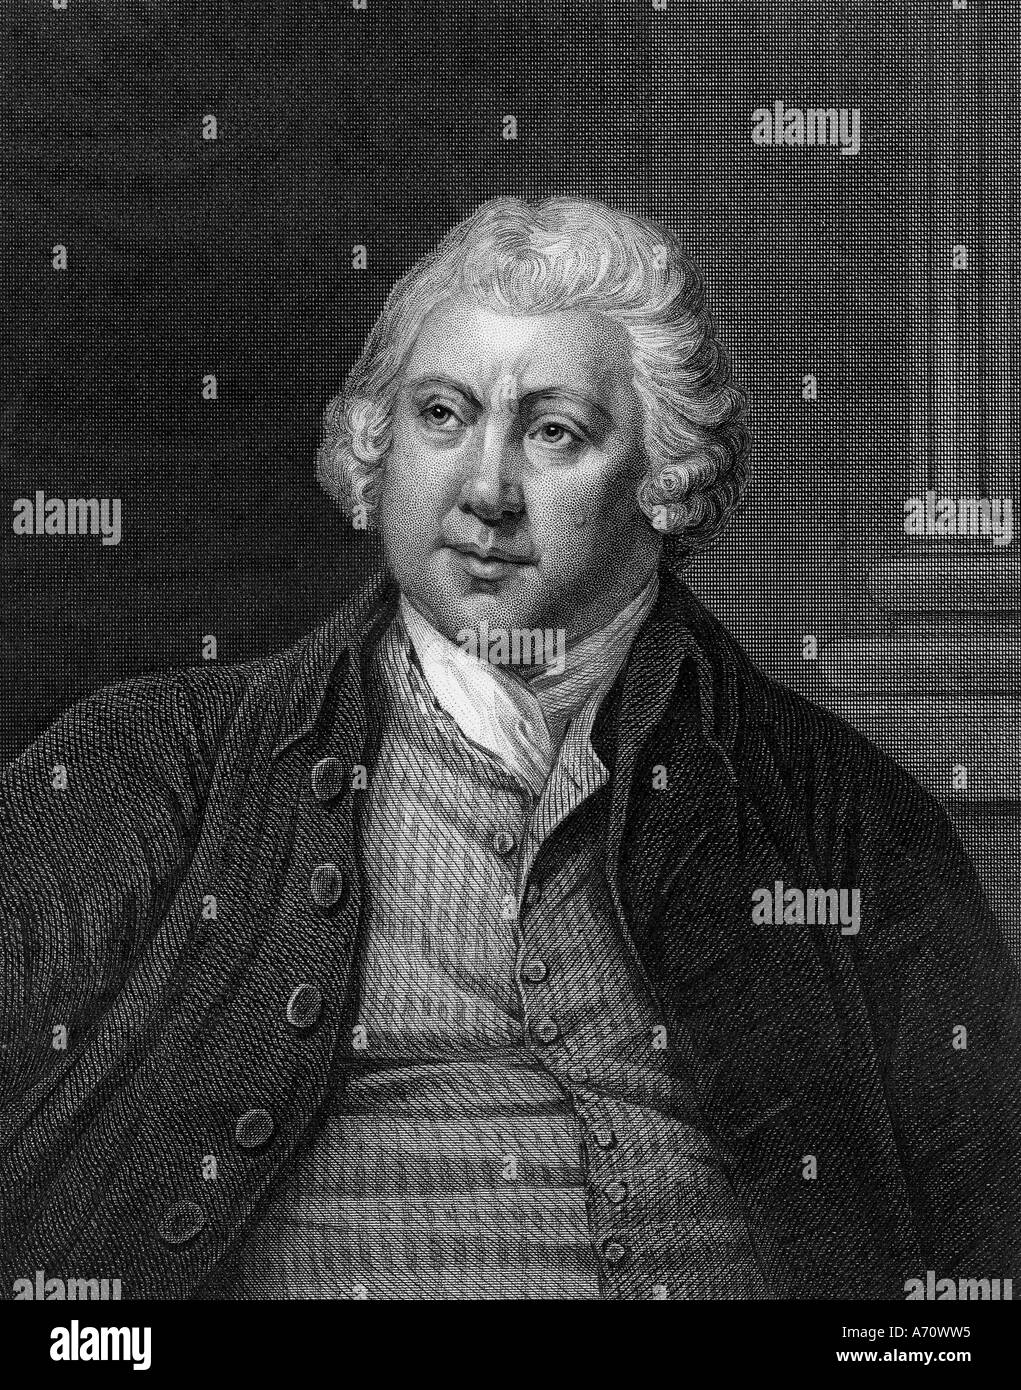 SIR RICHARD ARKWRIGHT 1732 to 1792 English industrialist and inventor of mechanical spinning - Stock Image